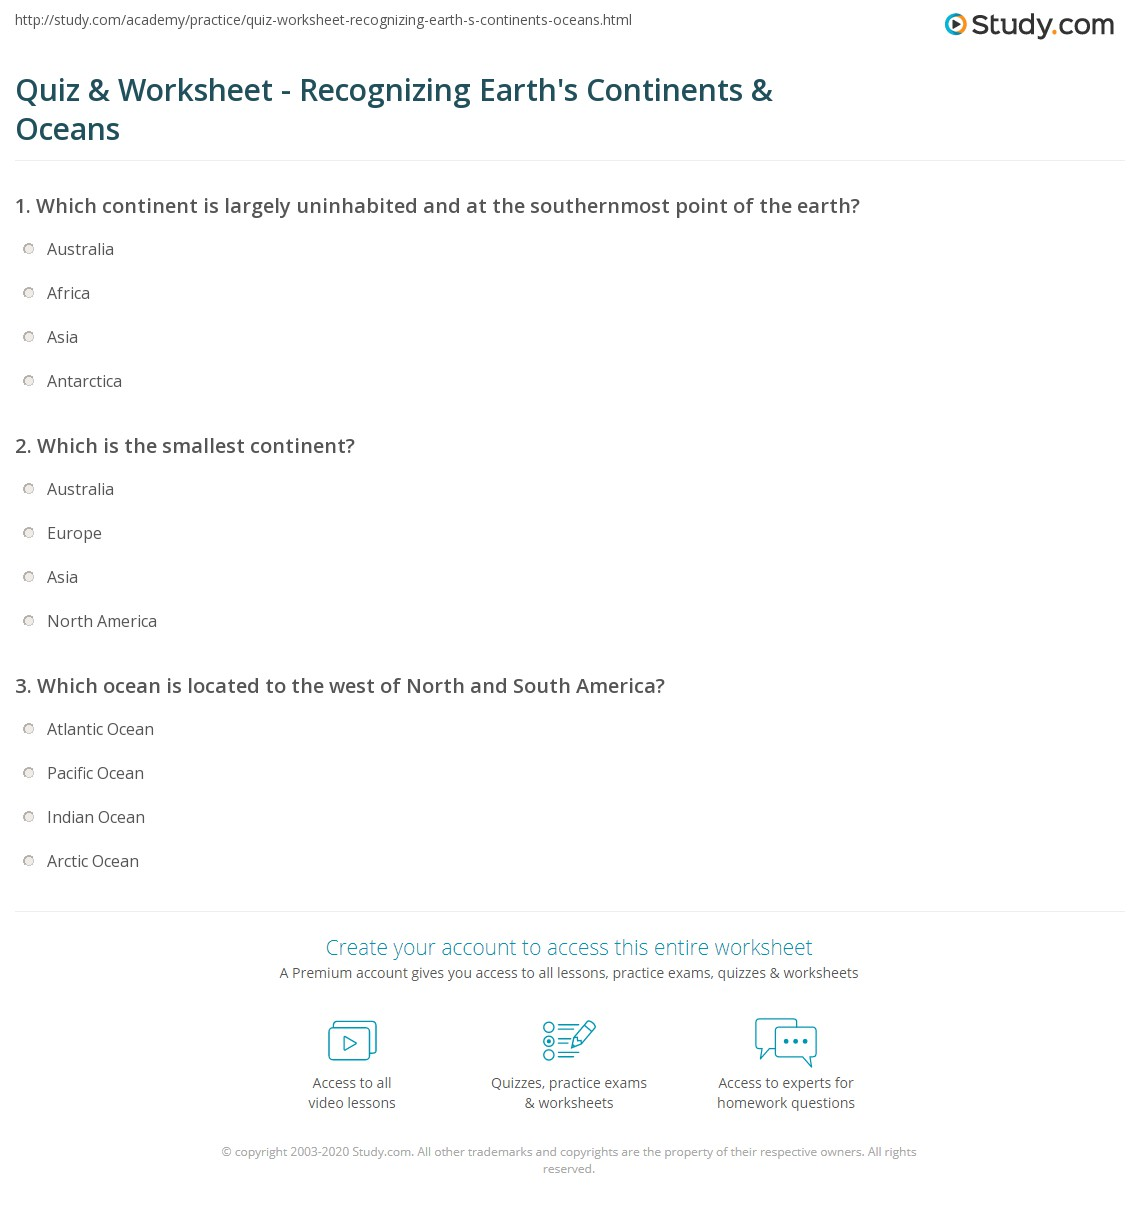 Worksheets Continents And Oceans Quiz Worksheet quiz worksheet recognizing earths continents oceans study com print identifying the of world worksheet